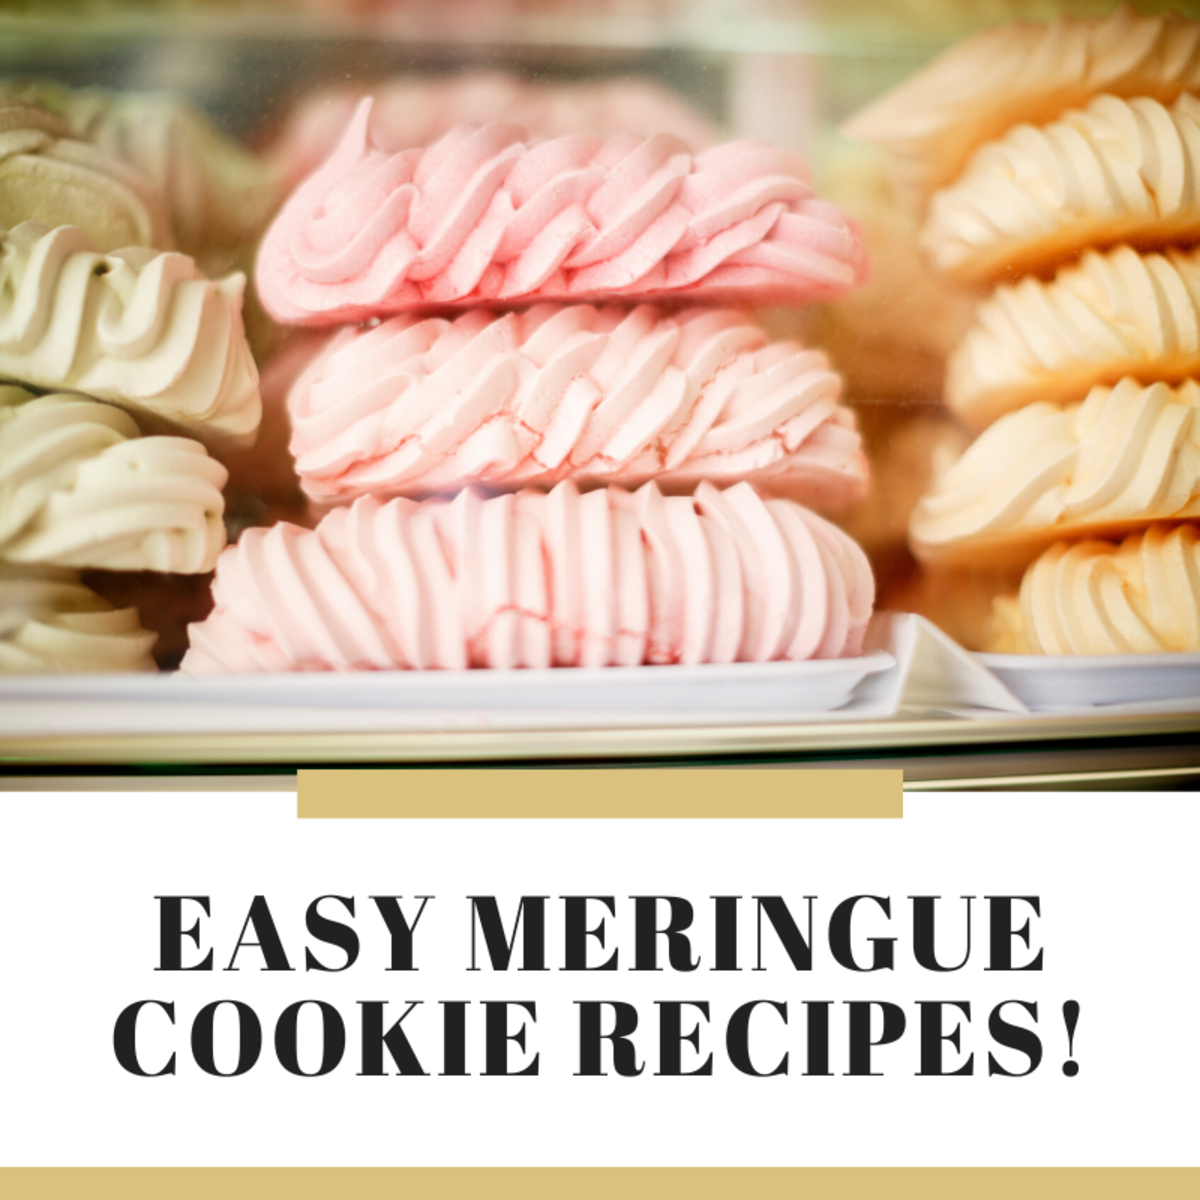 13 Easy Meringue Cookie Recipes